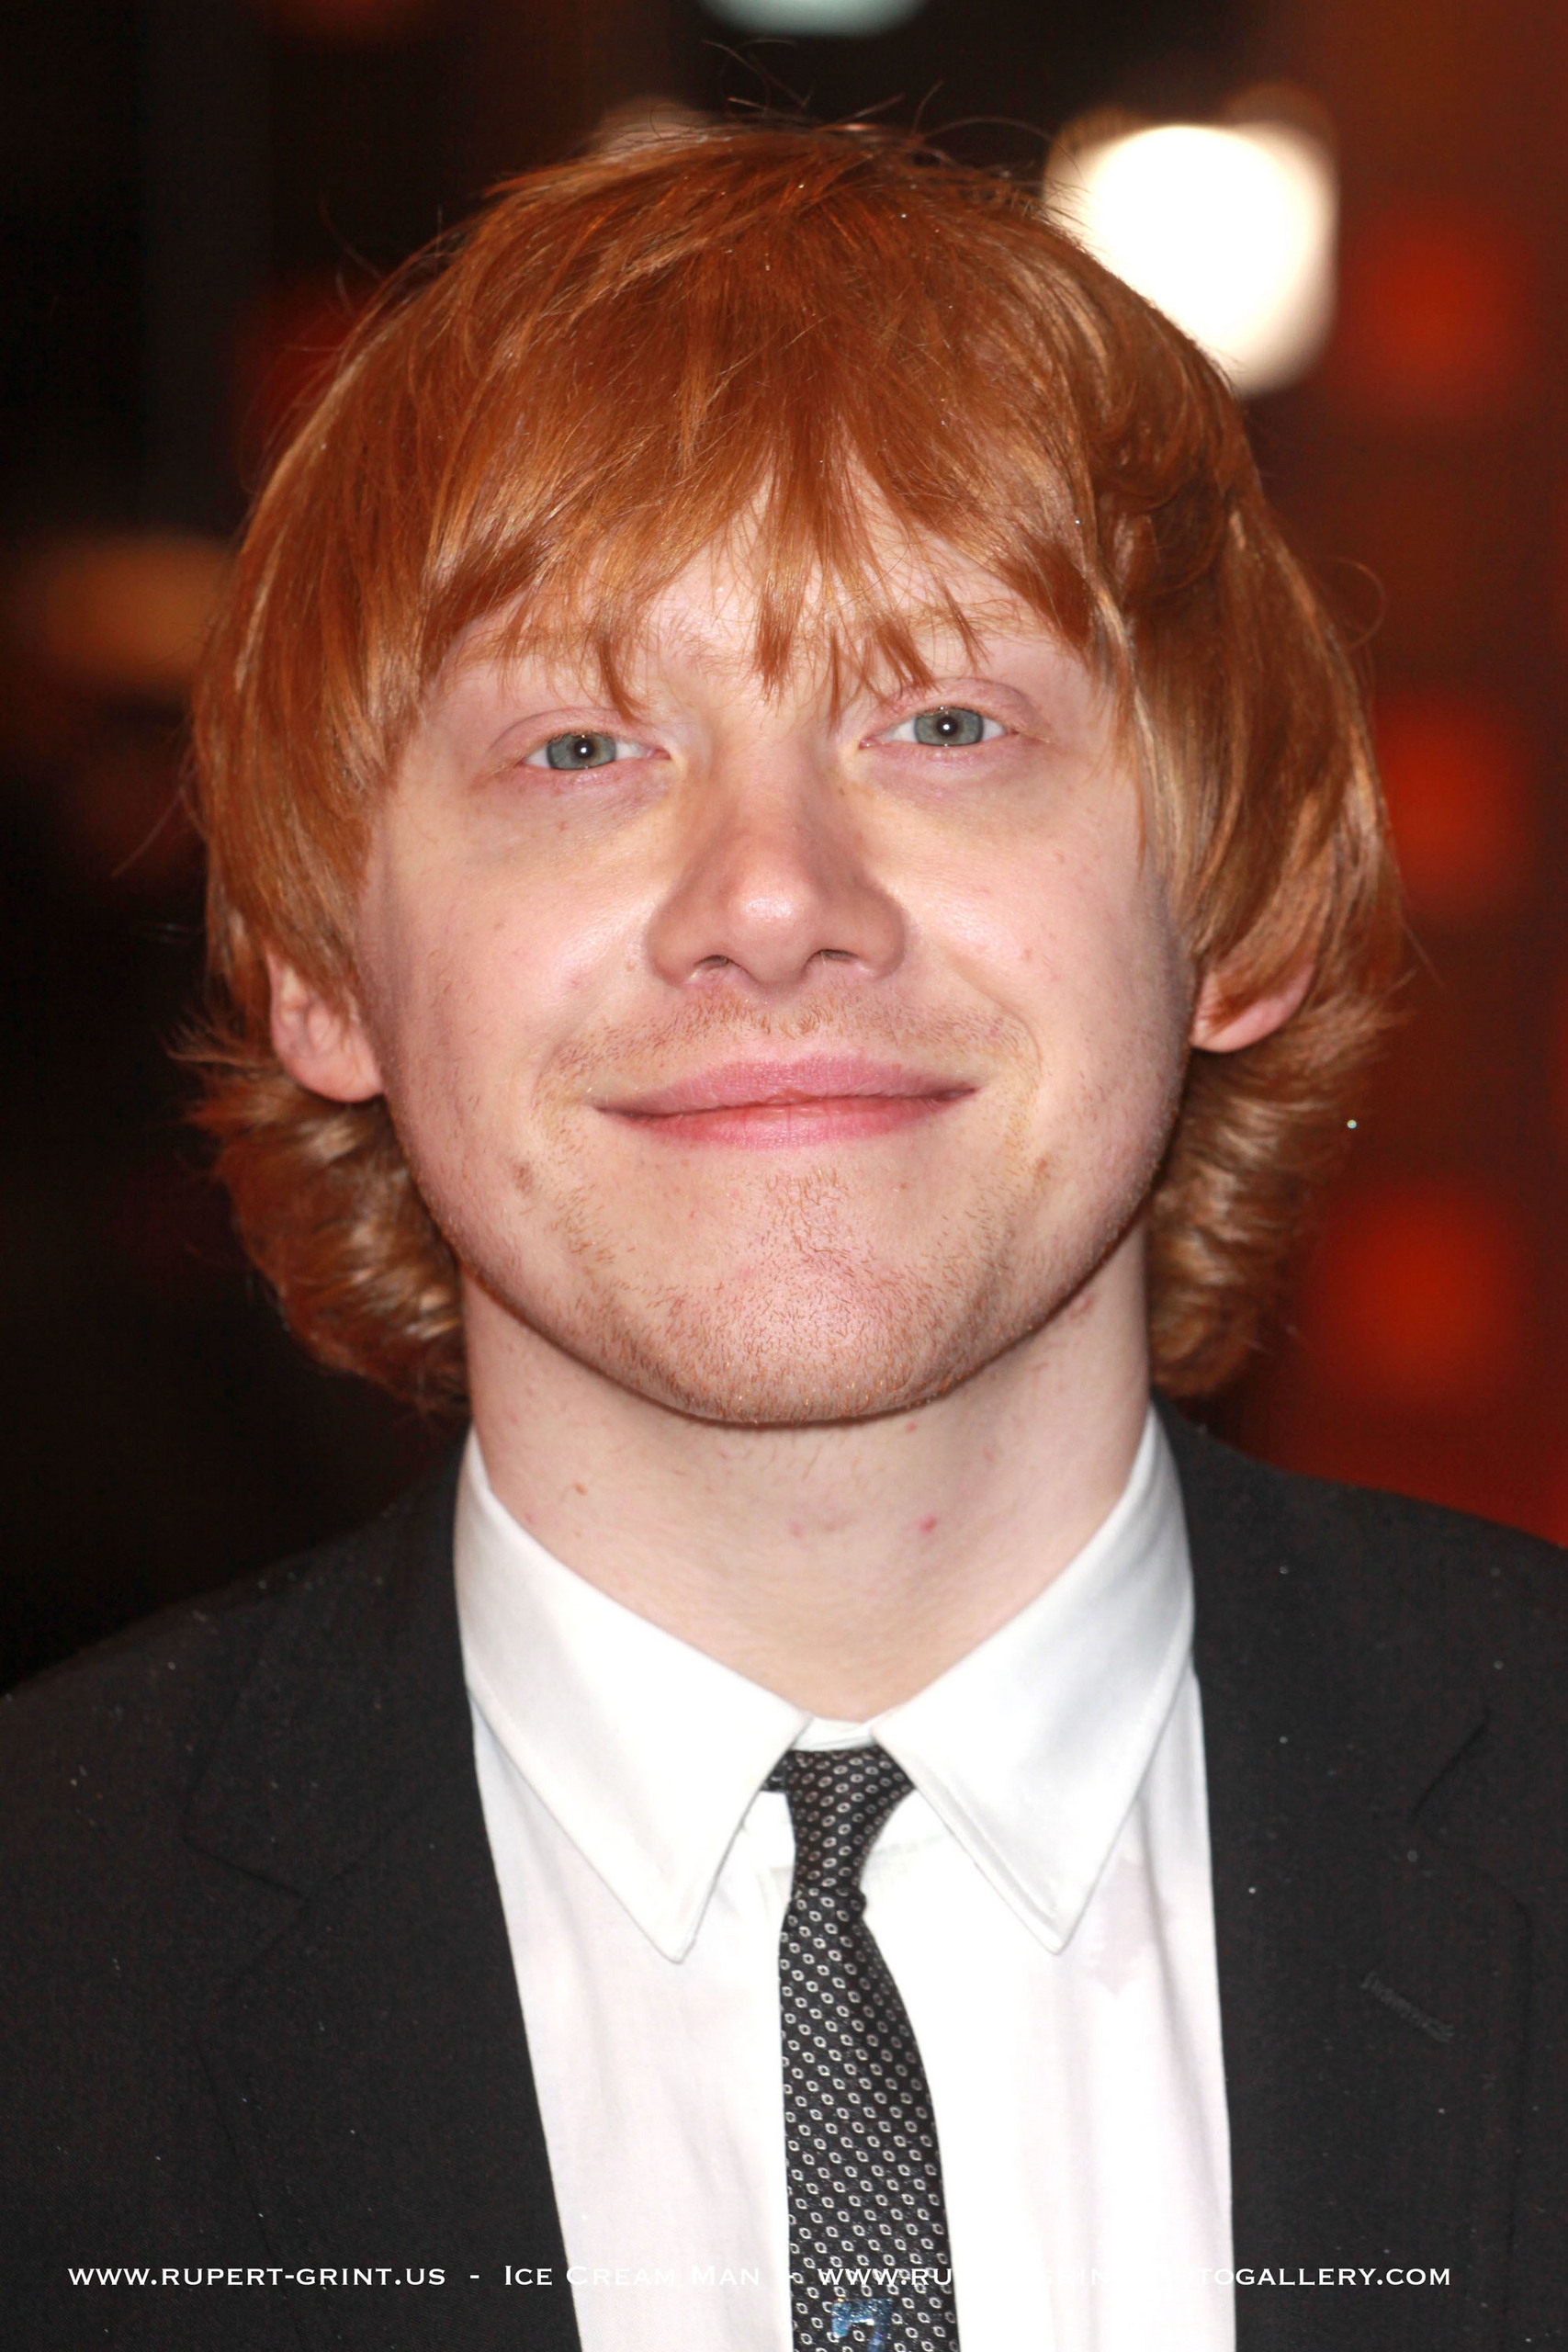 Desktop Rupert Grint Wallpaper #h1249758